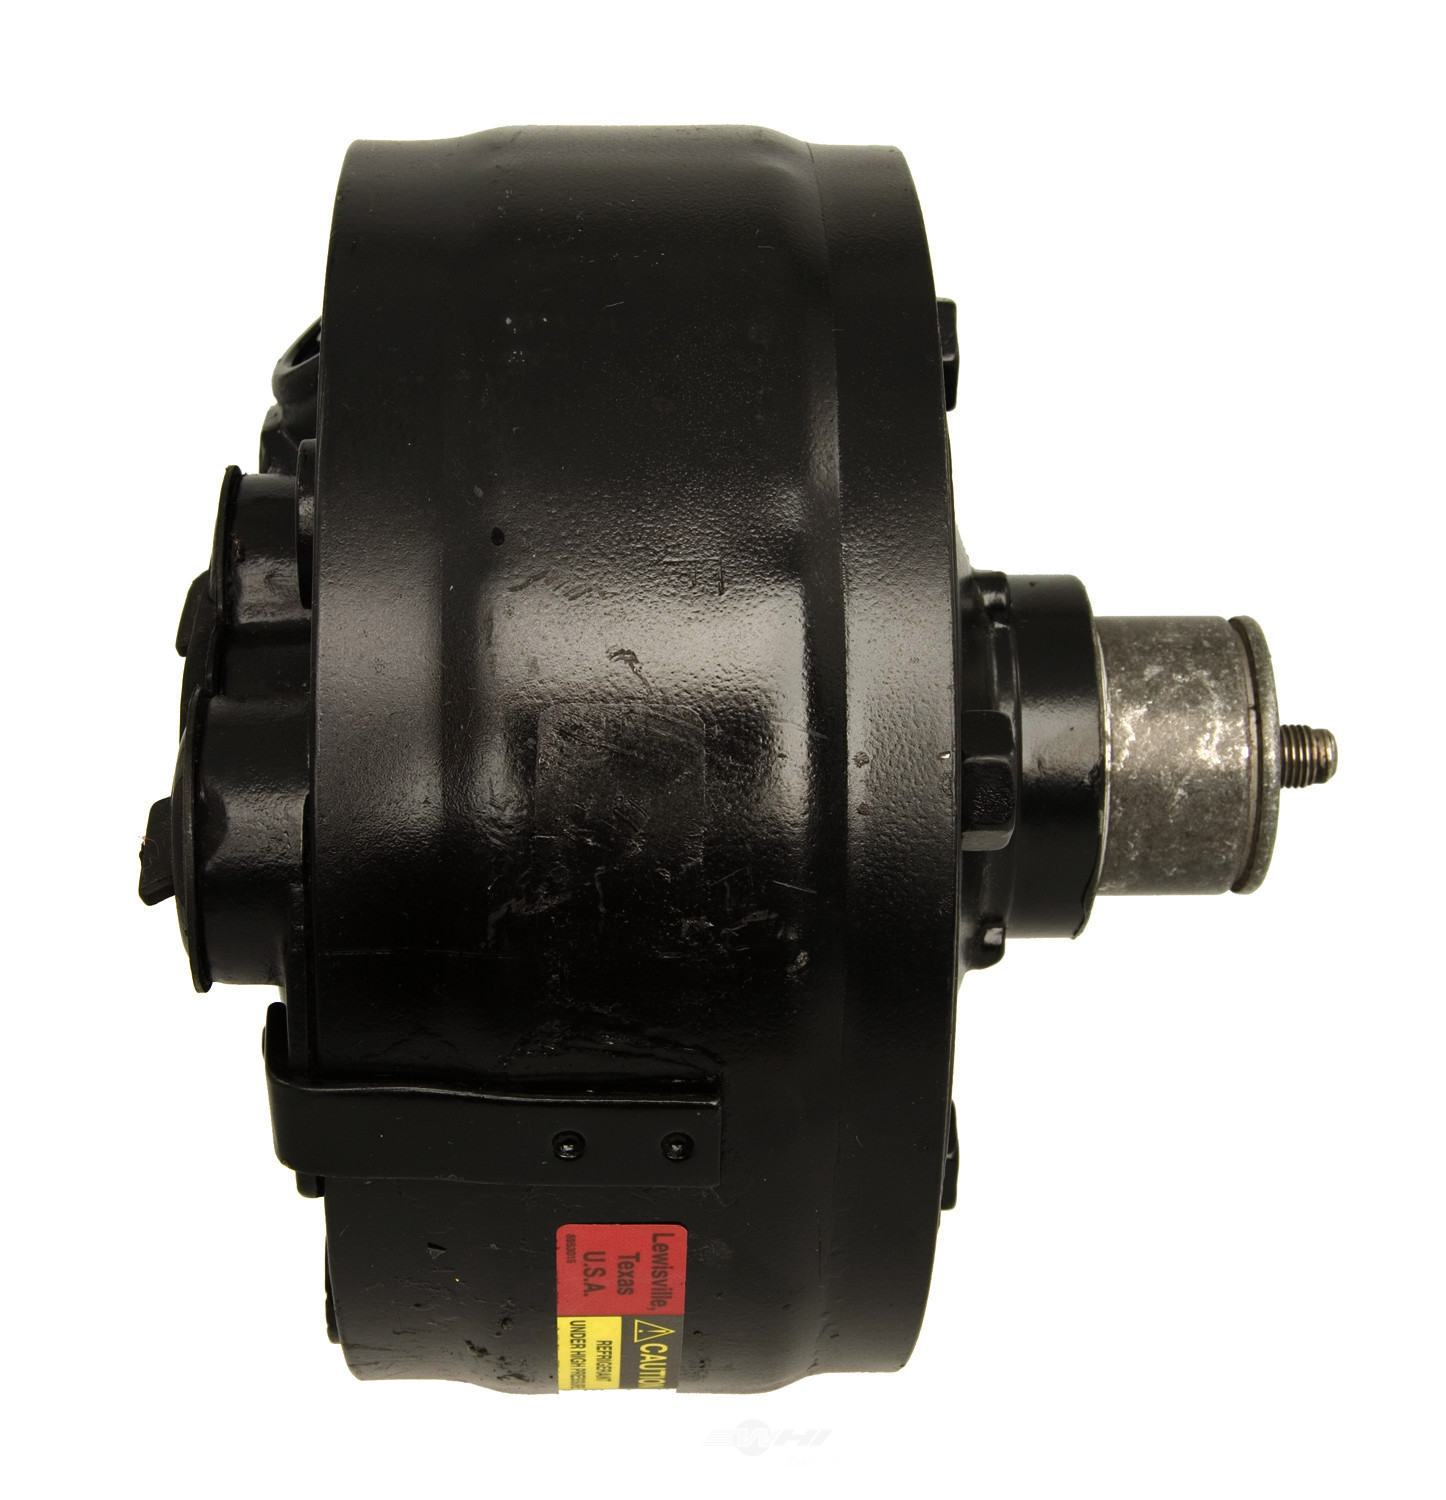 ACDELCO PROFESSIONAL - Reman A/C Compressor - DCC 15-20624